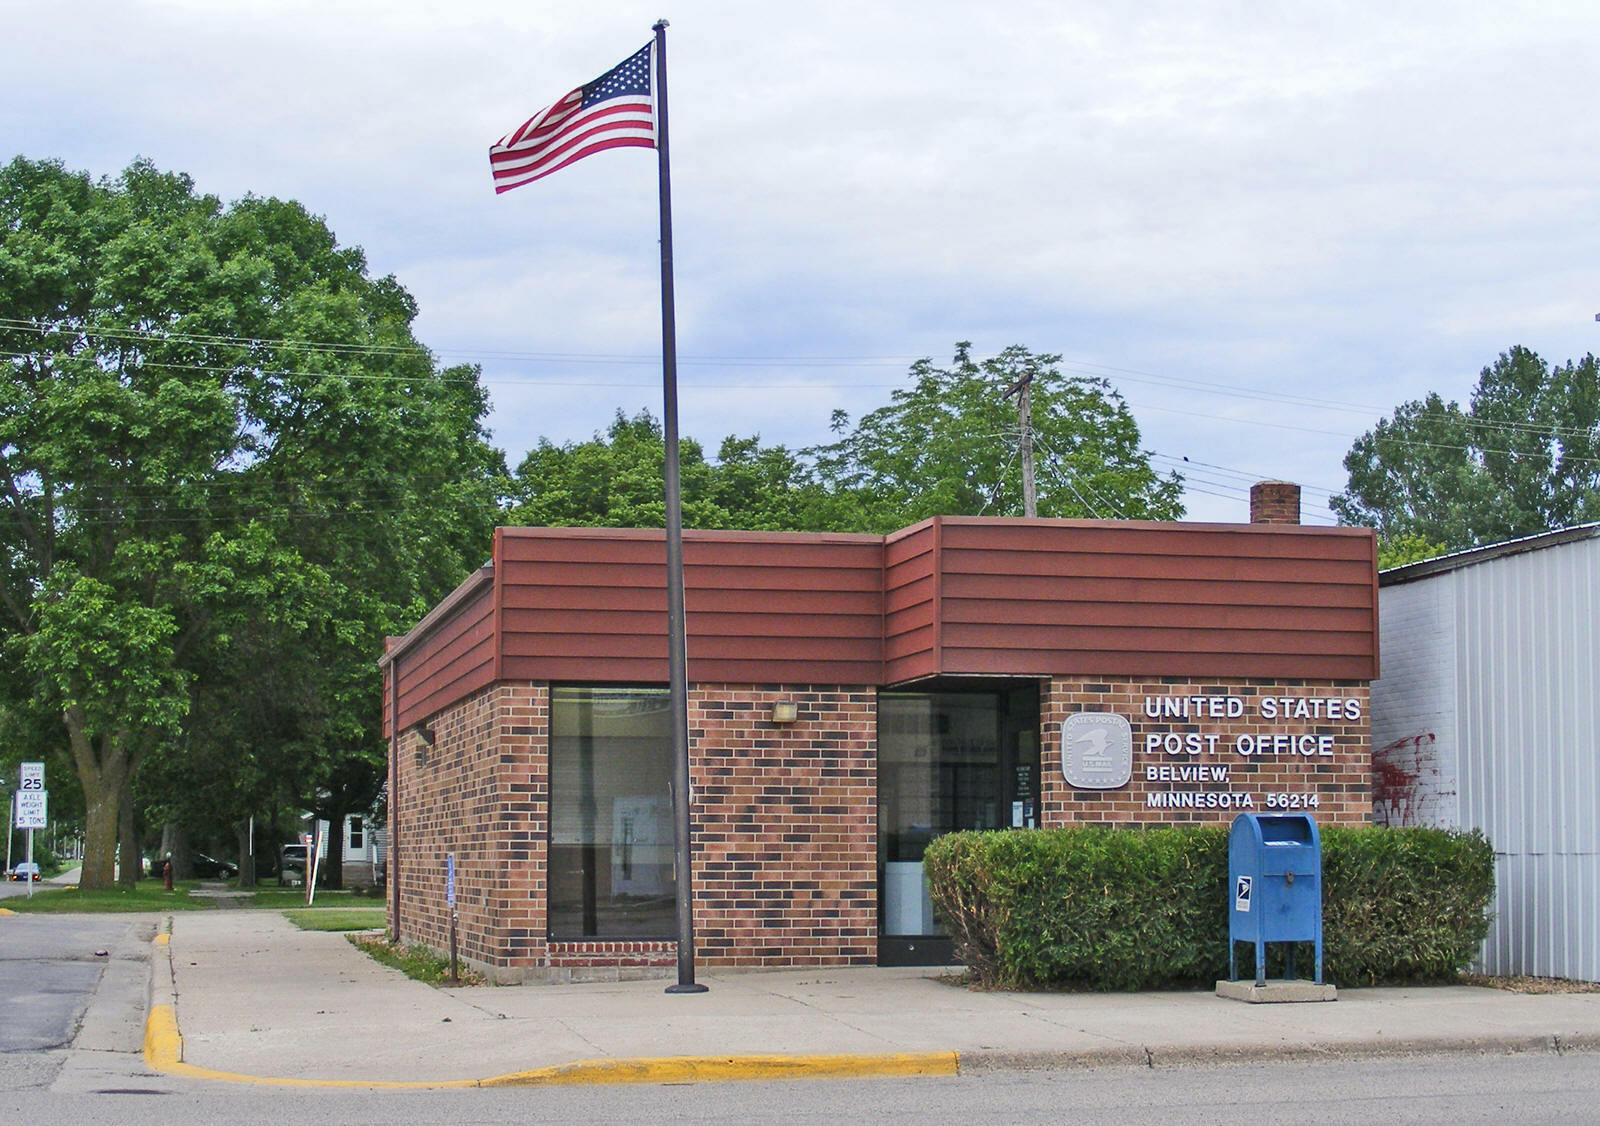 Belview, MN - US Post Office